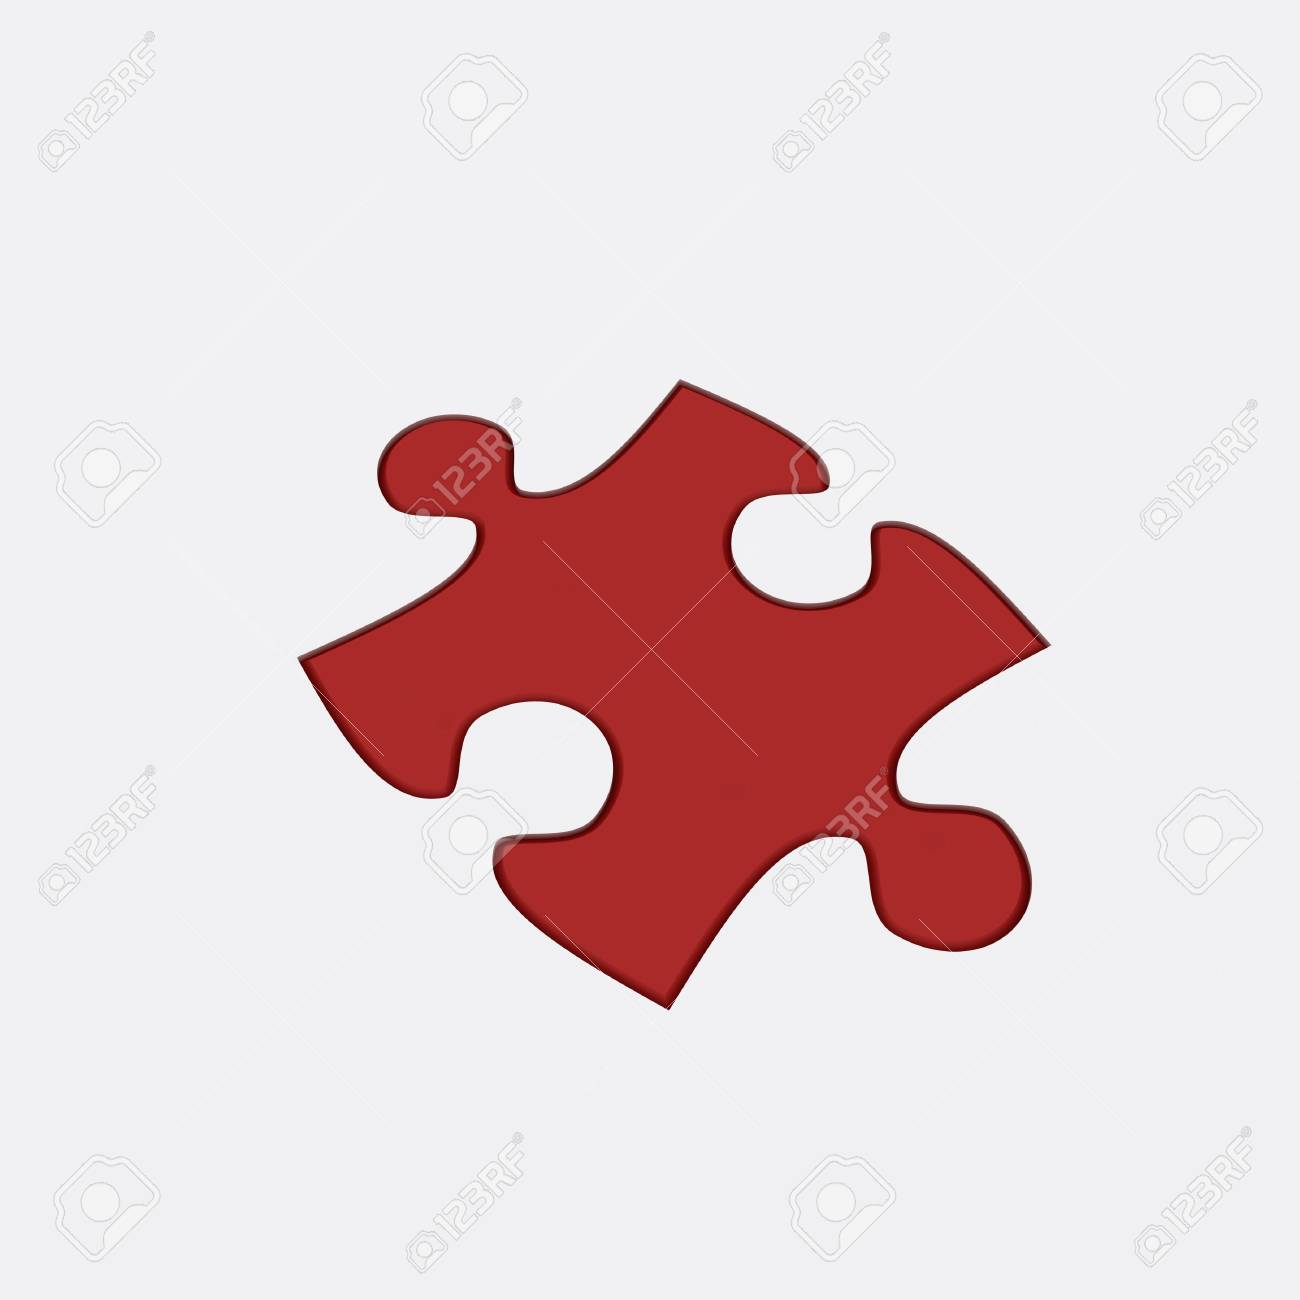 Beautiful Red Puzzle on white background. Large image Resolution Stock Photo - 6301660